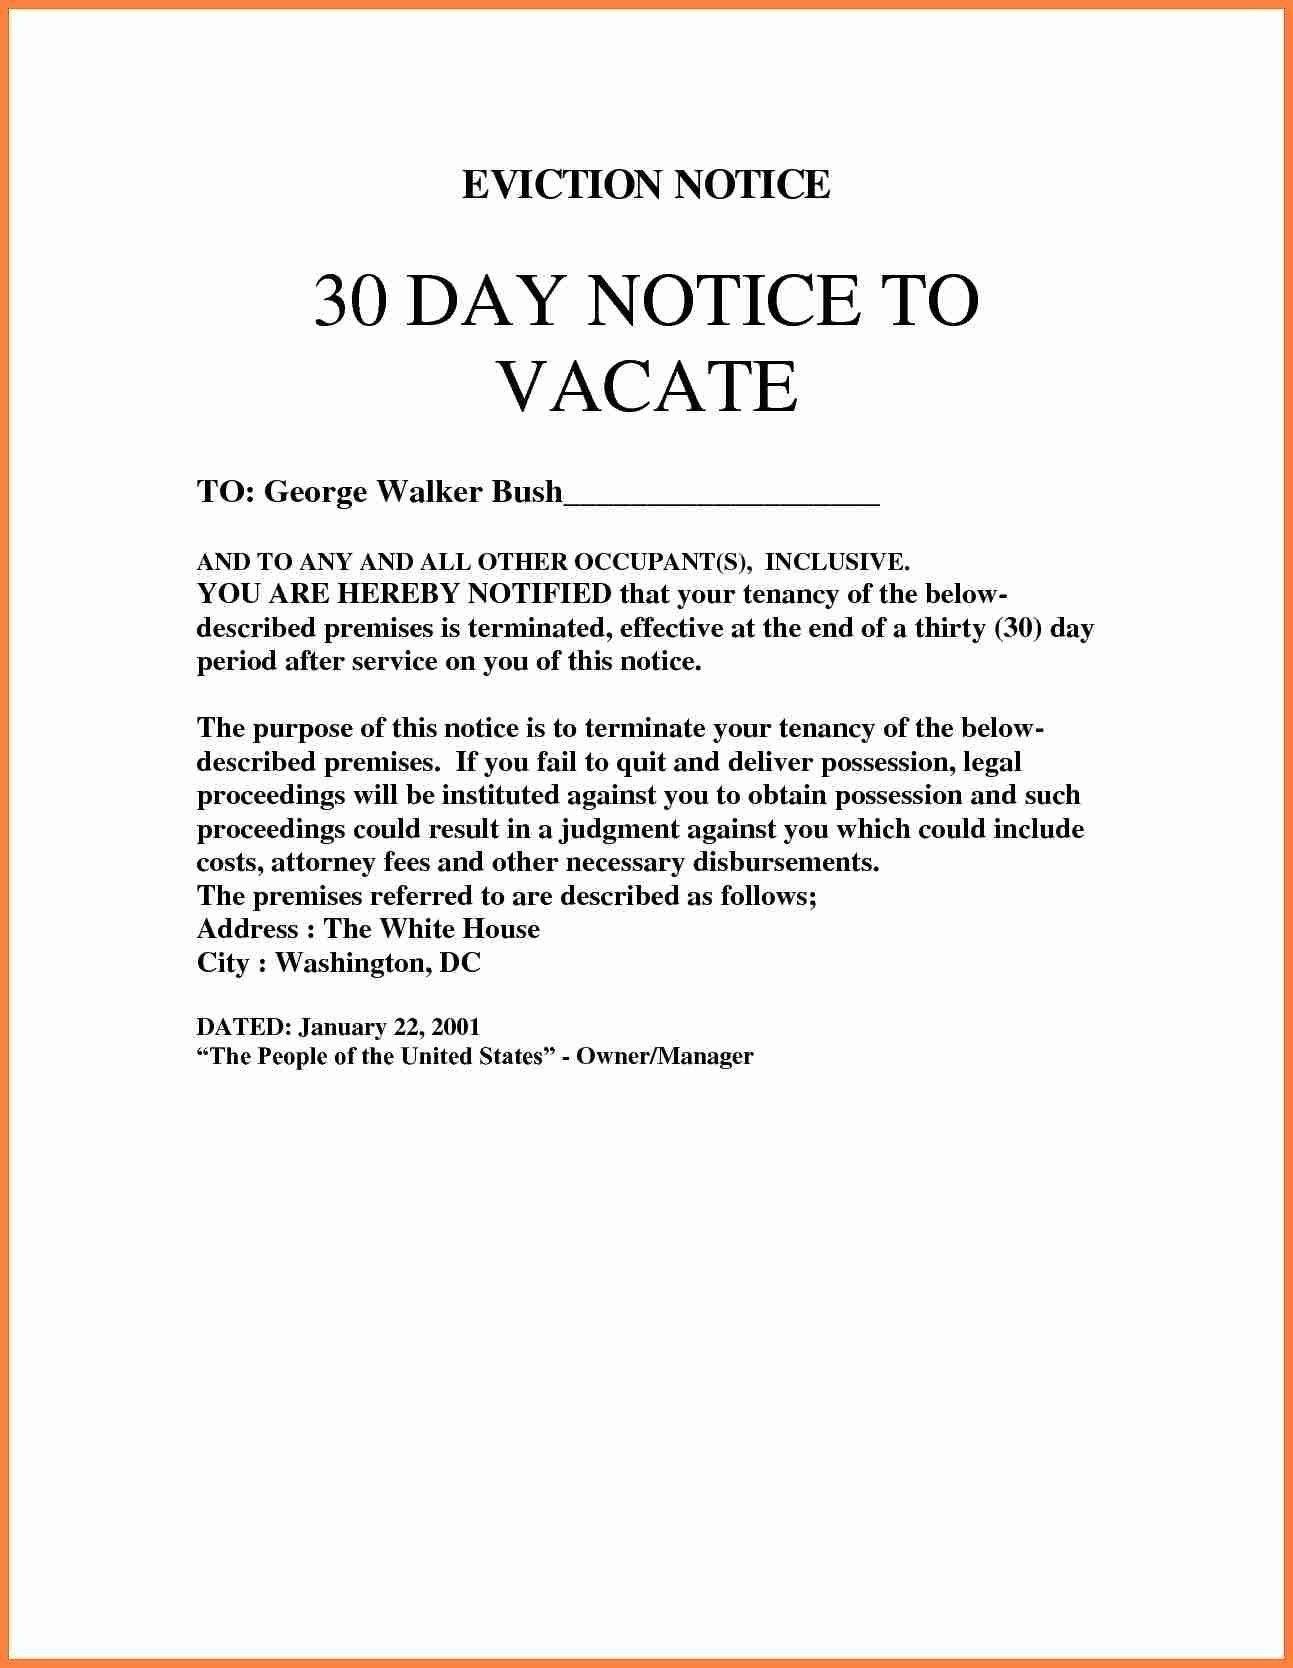 Eviction notice template blank eviction notice form